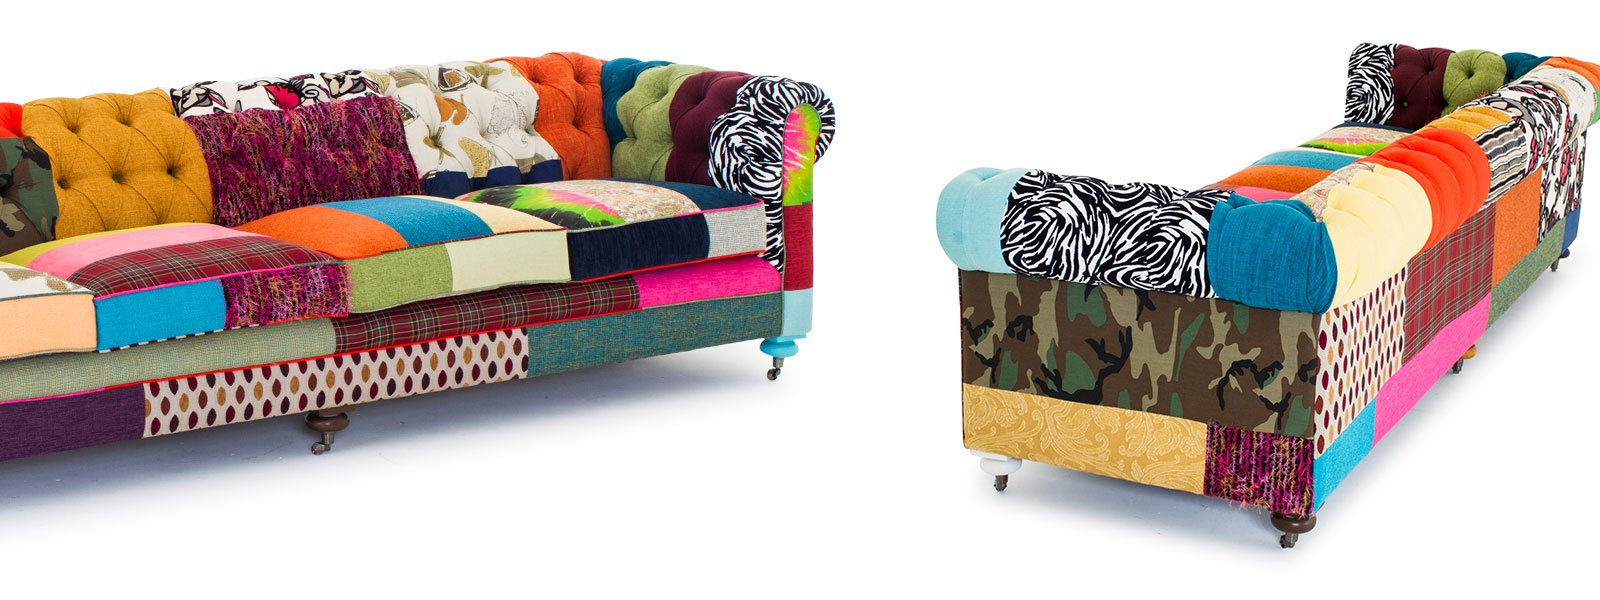 Patchwork Sofa sign up to be notified u003e bold innovation RGFWEGA